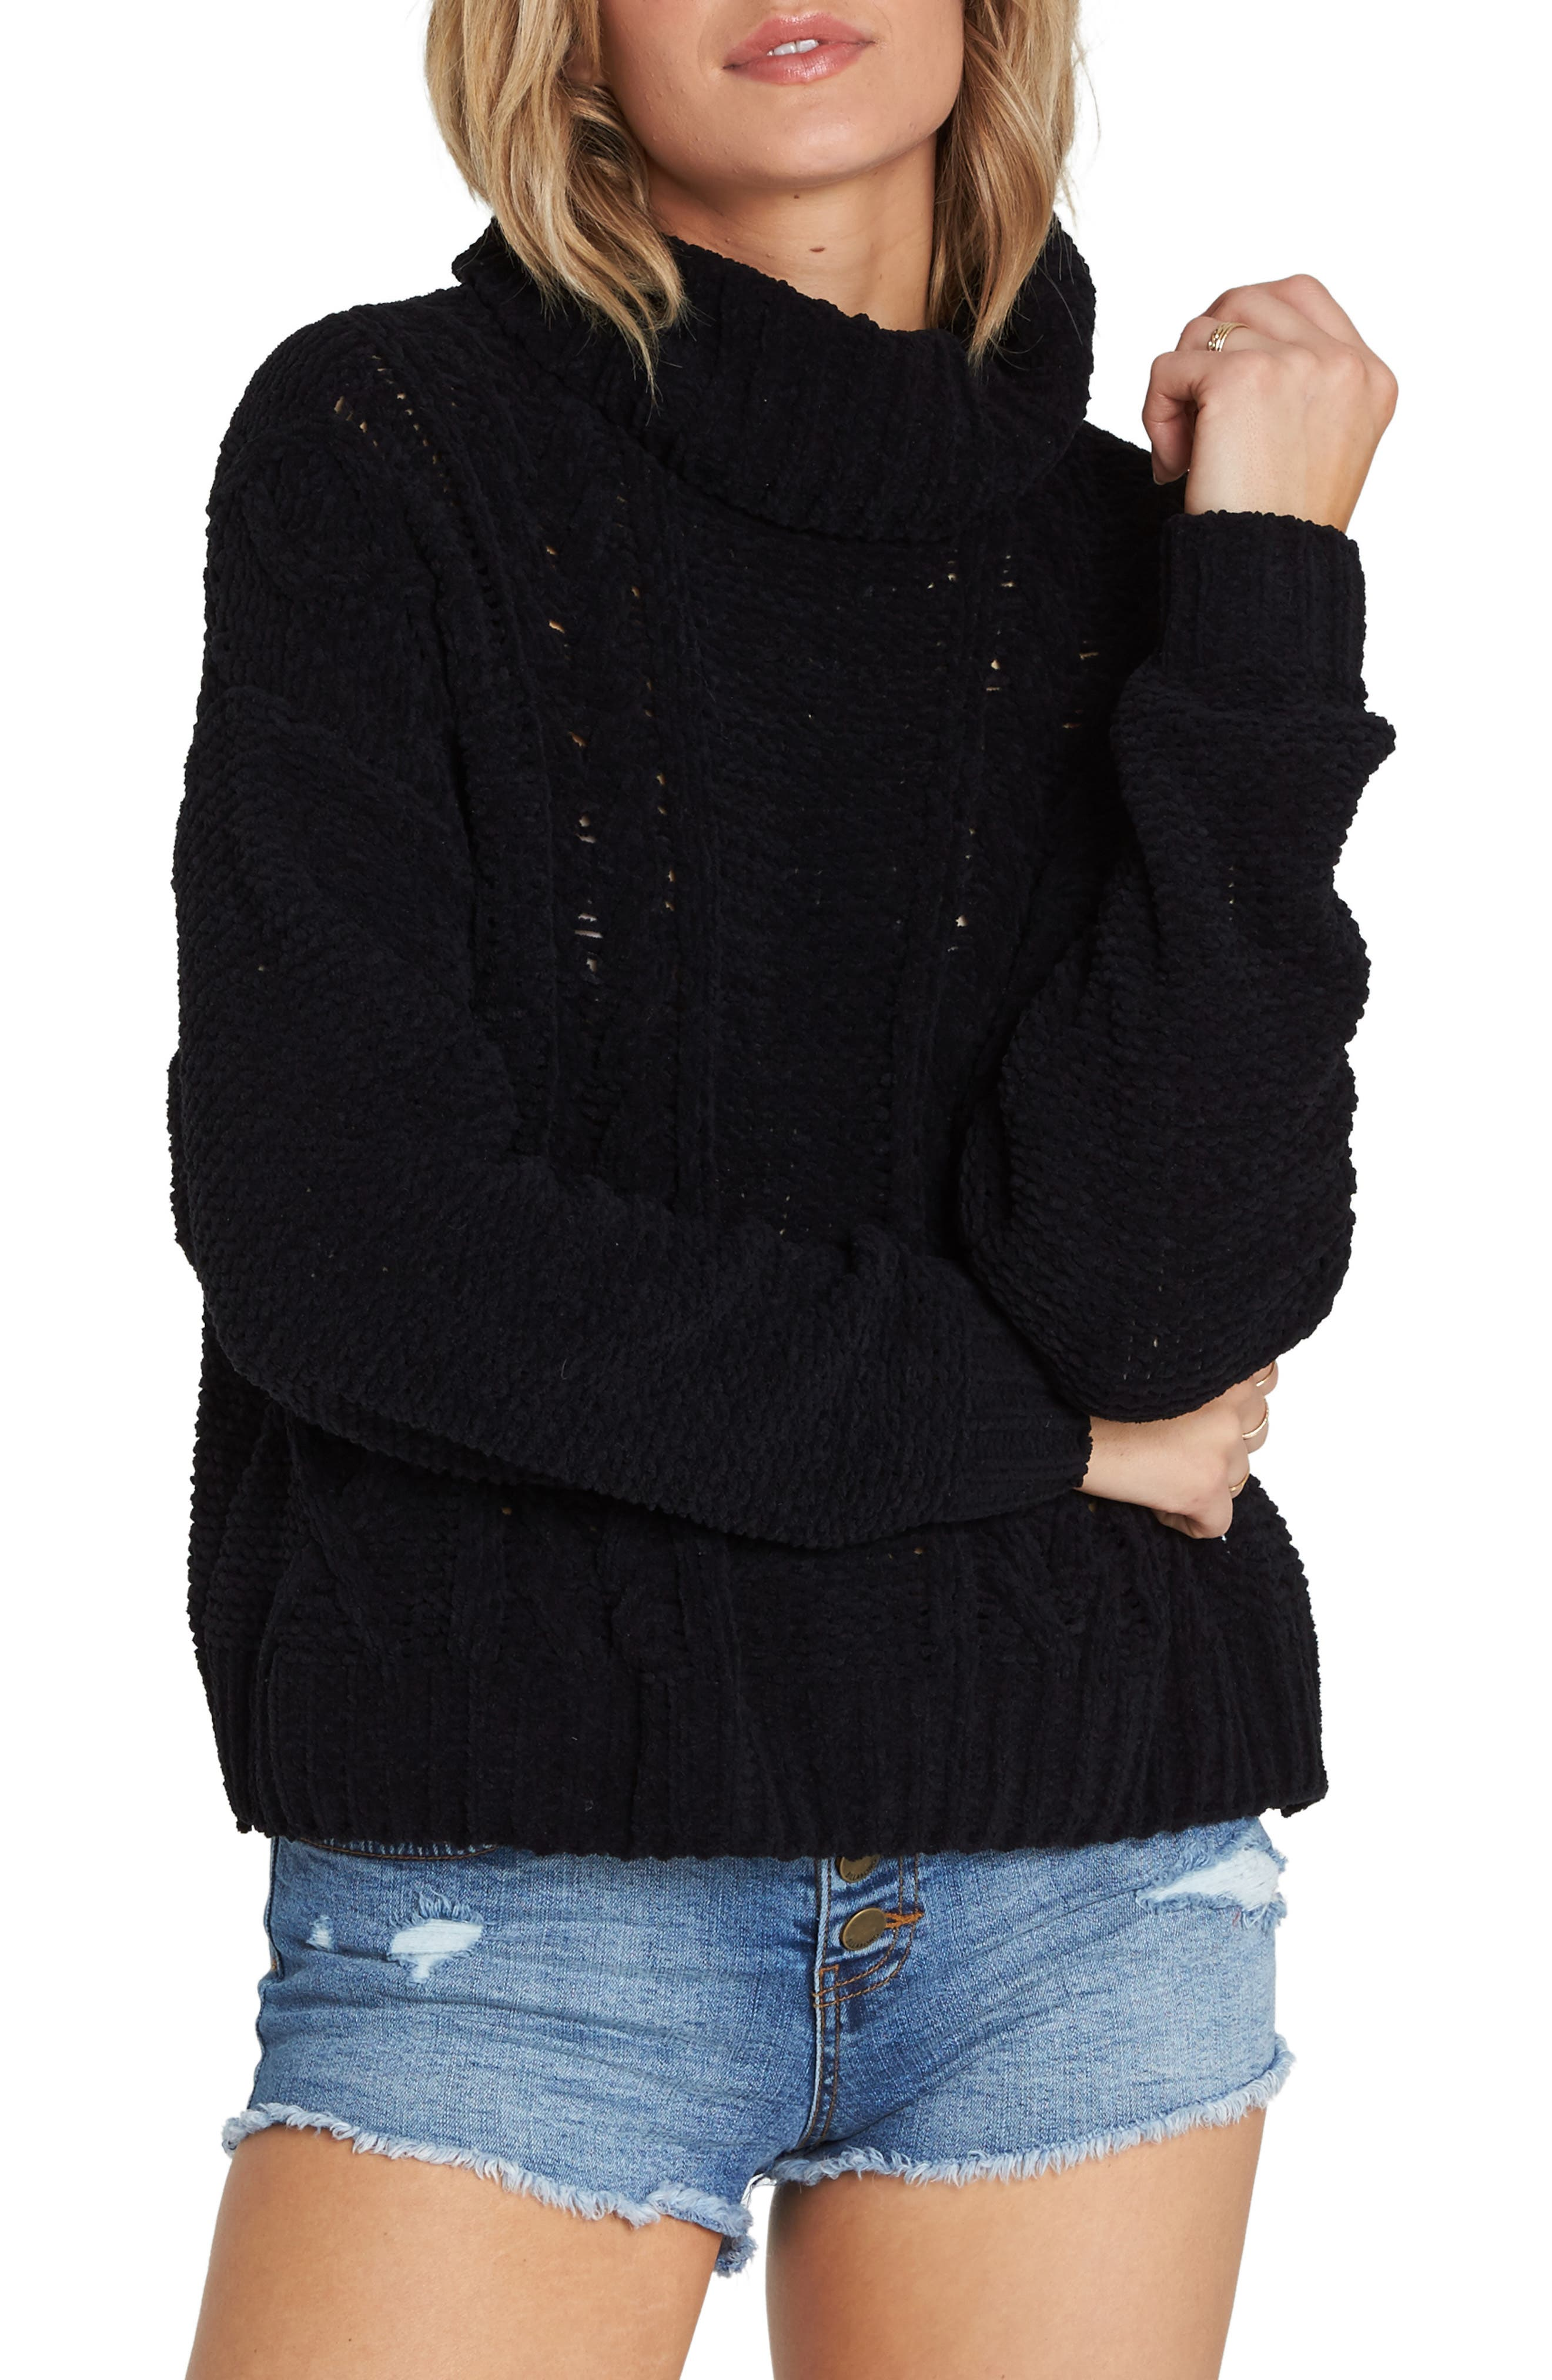 BILLABONG Cable Knit Turtleneck Sweater, Main, color, 001